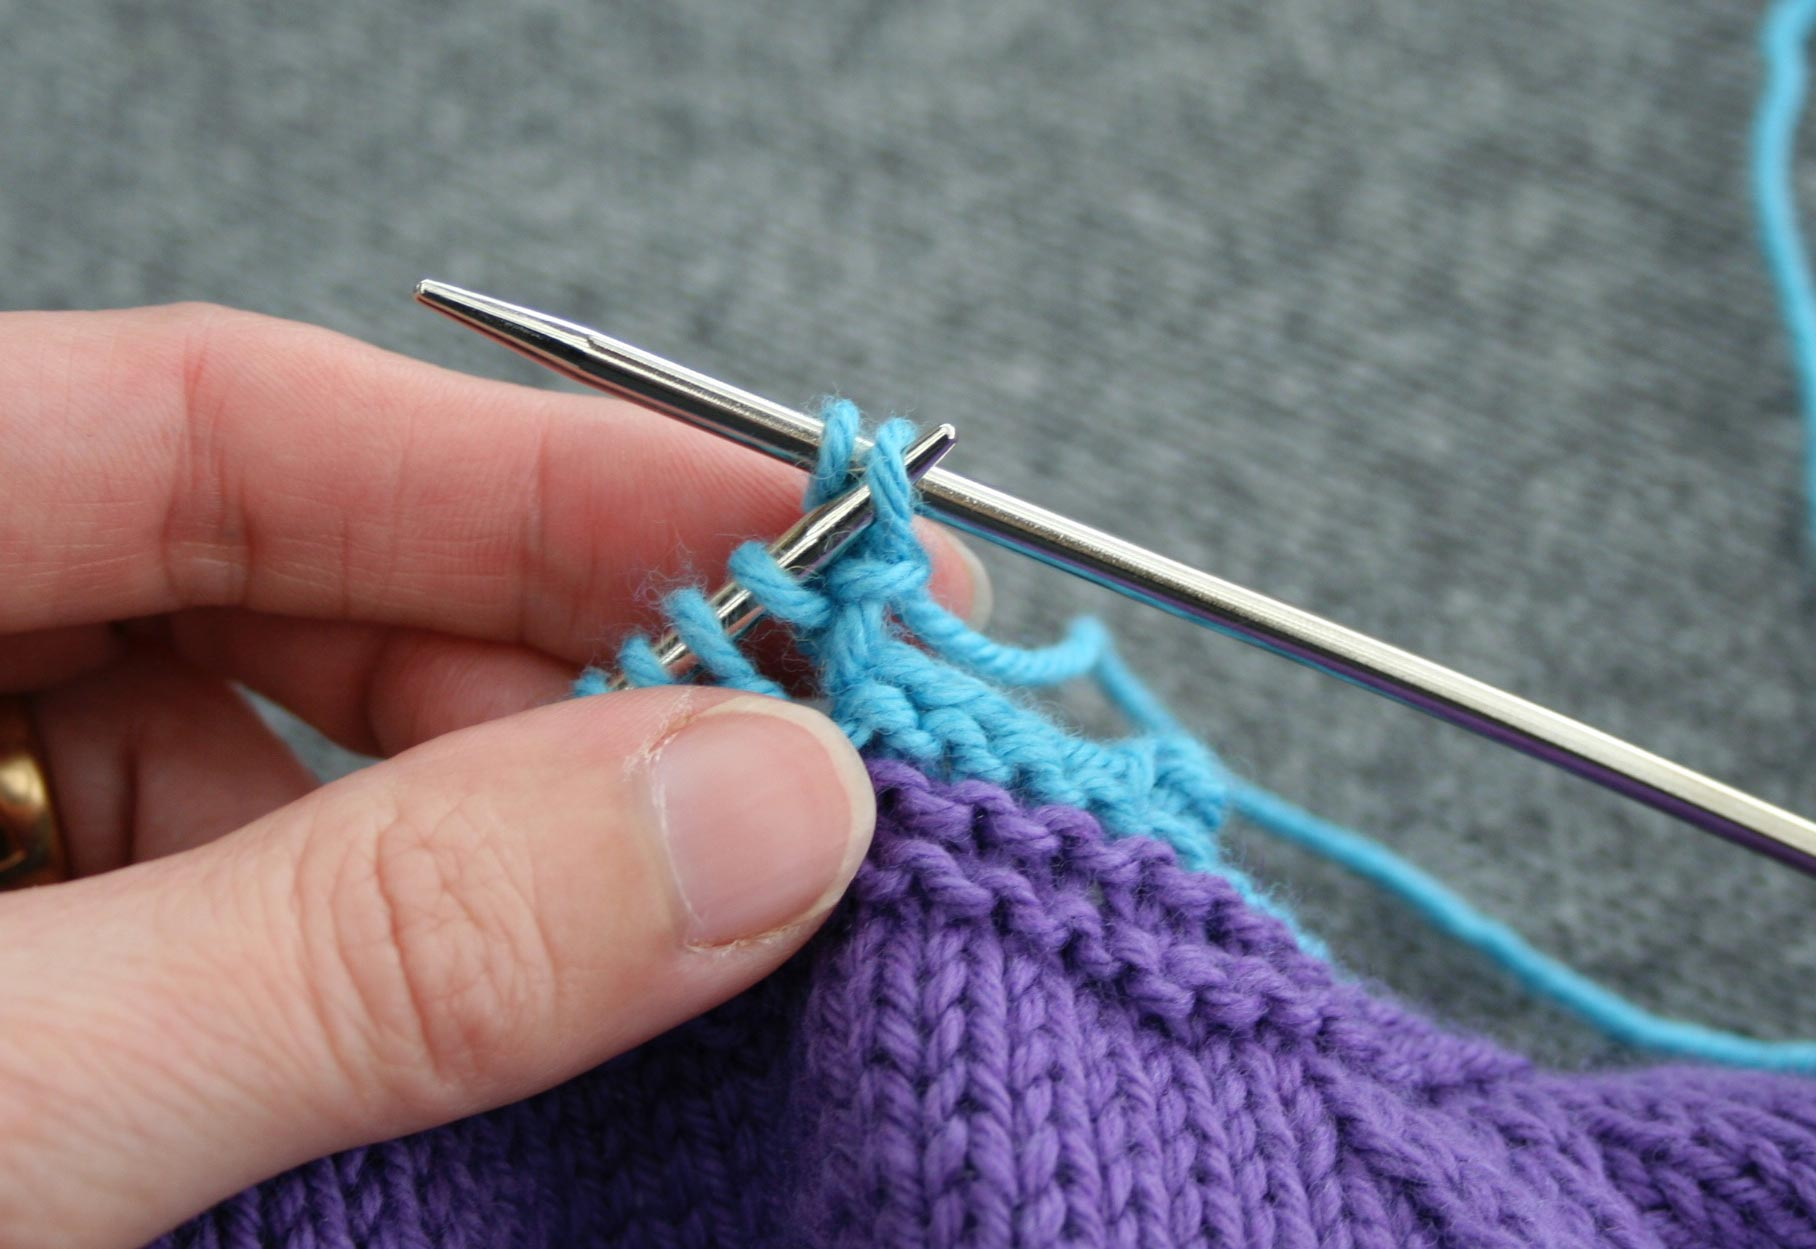 Left needle inserted in second stitch from end of right needle, preparing to pass it over last stitch worked.